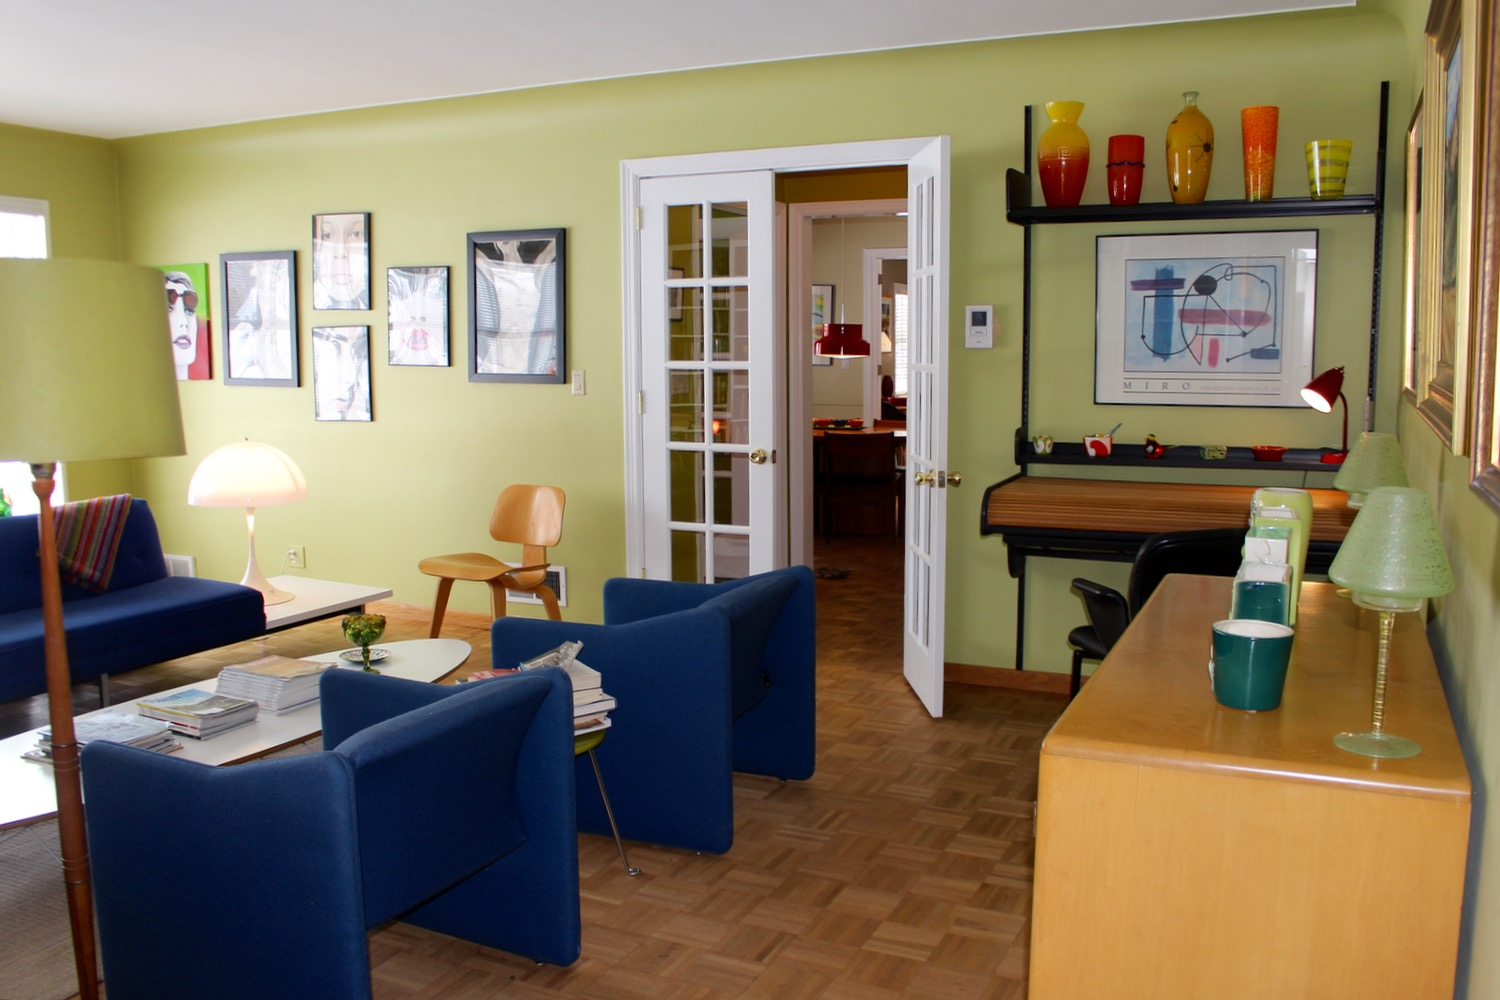 Bright french doors and a Herman Miller desk